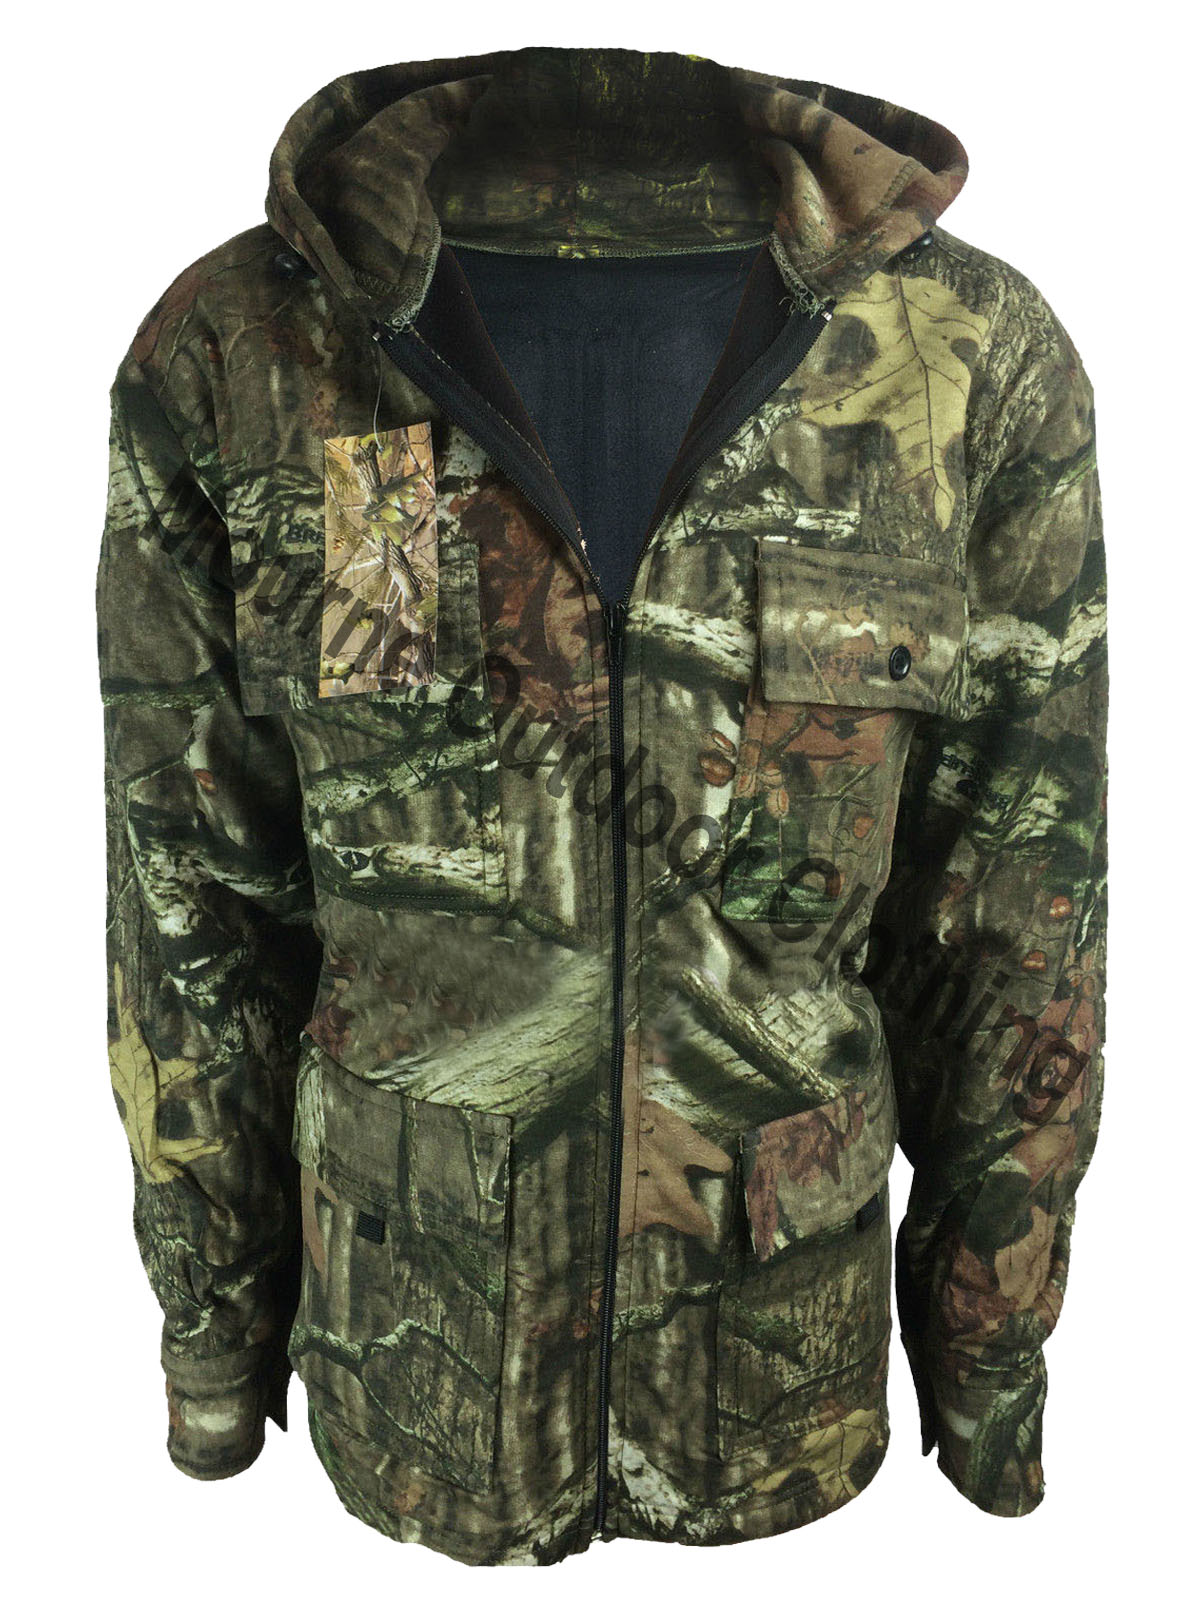 Realtree Camouflage Hooded Hunting Jacket